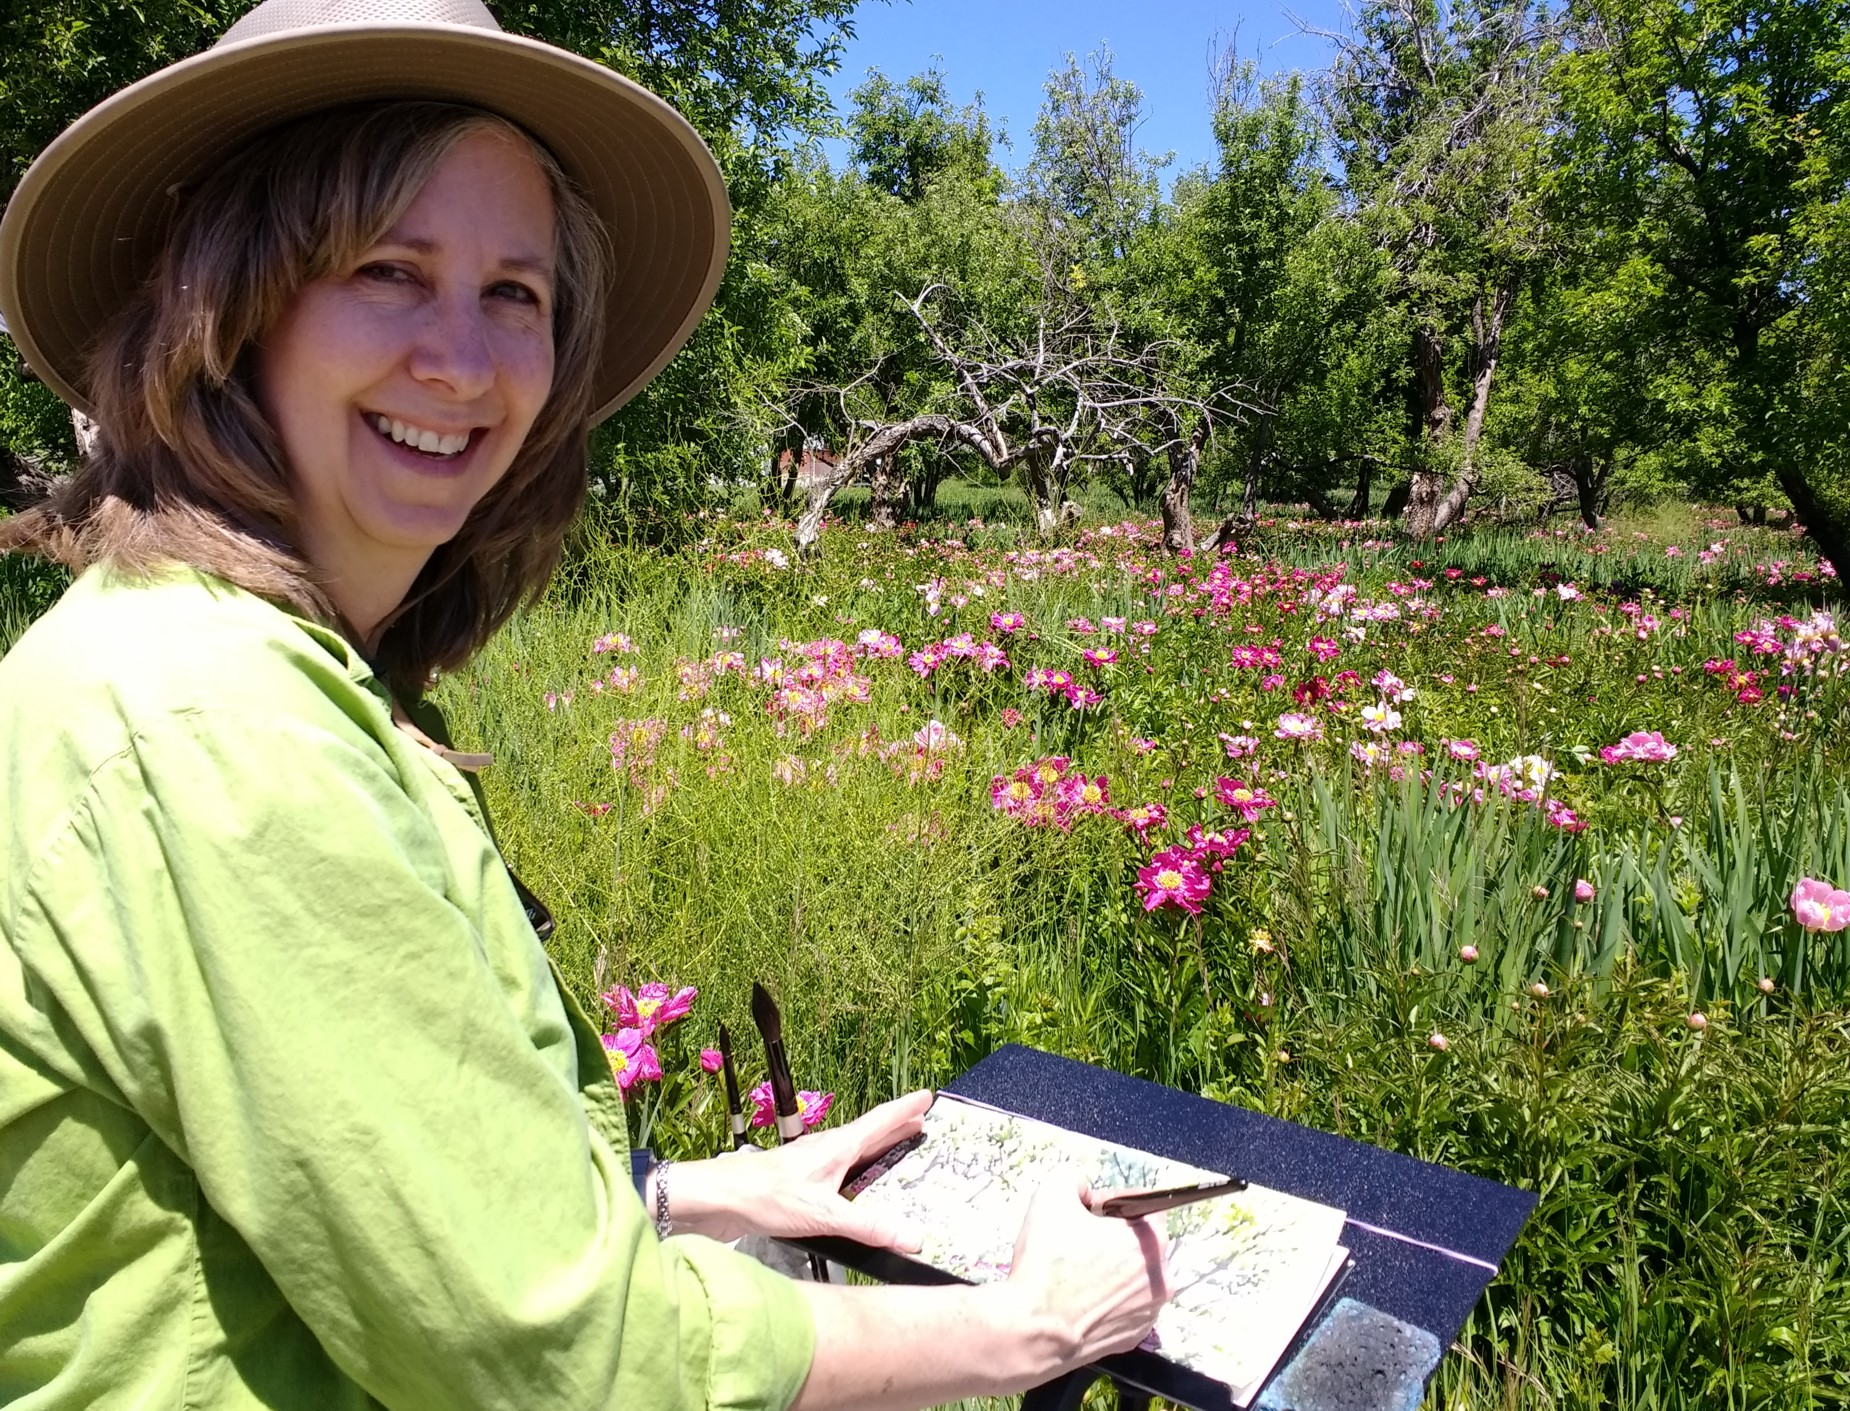 Painting at a beautiful Peony farm.